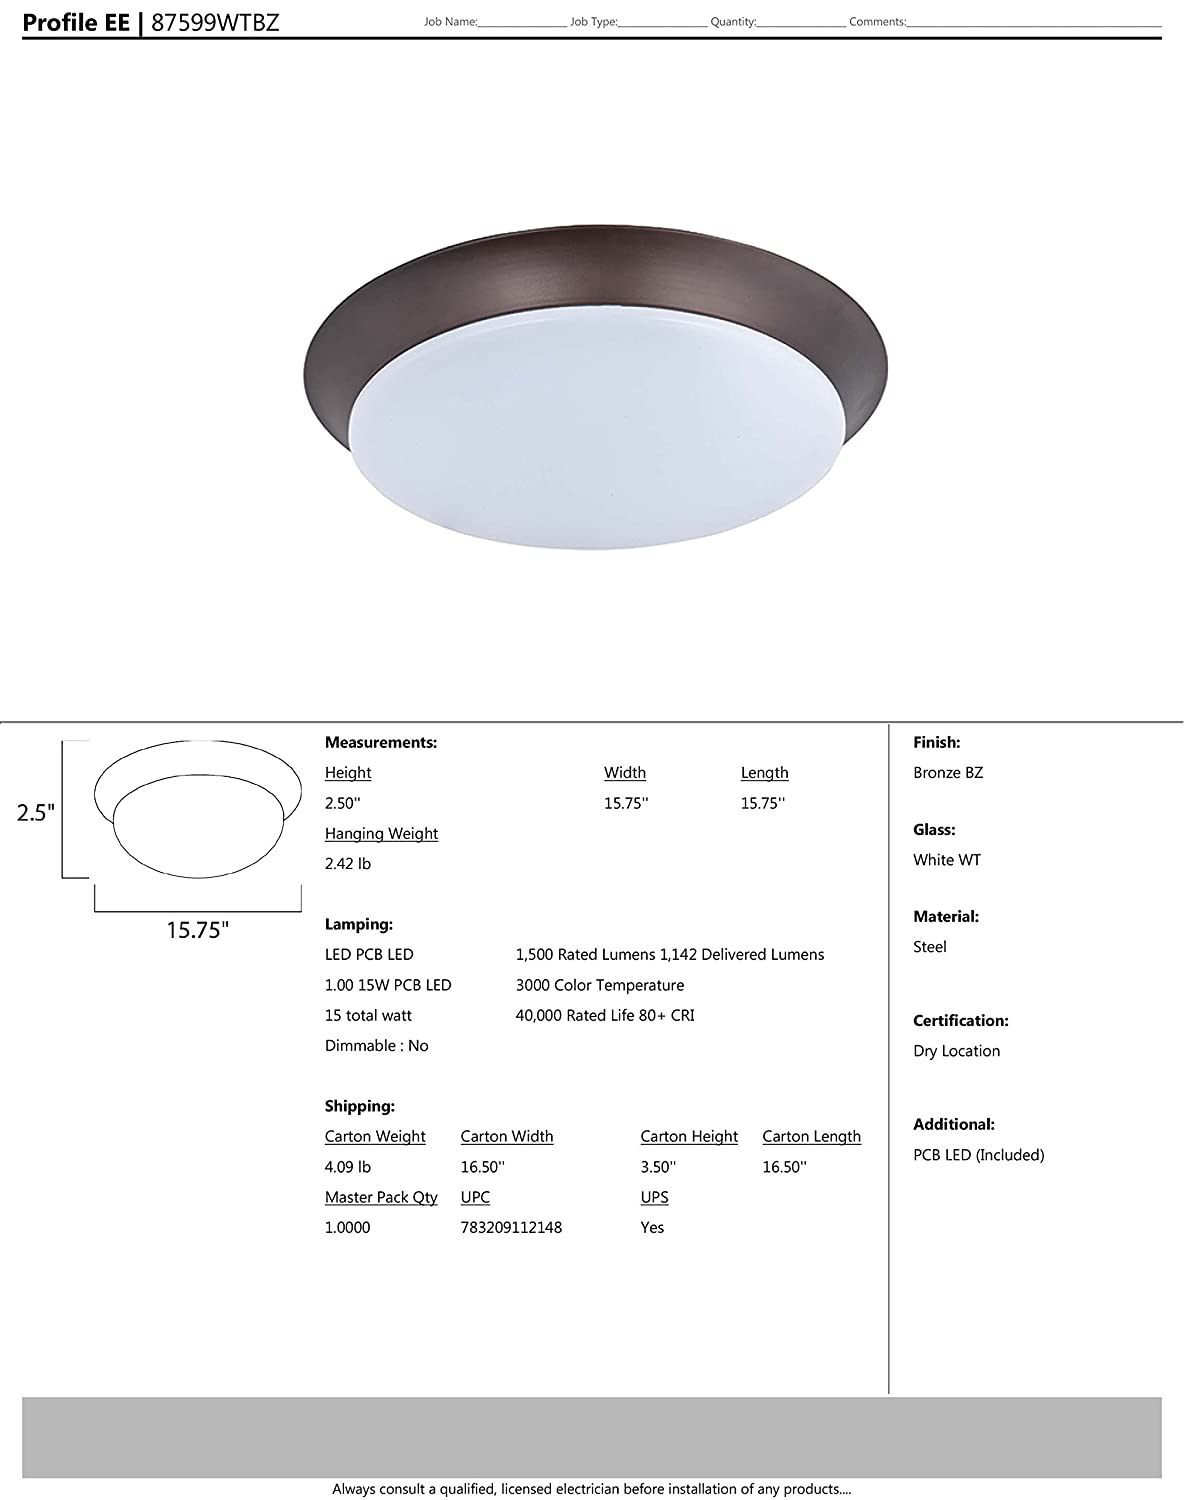 PCB LED Bulb Standard Dimmable Damp Safety Rating White Glass Maxim 87599WTSN Profile EE LED Flush Mount Satin Nickel Finish 100W Max. Shade Material 9200 Rated Lumens